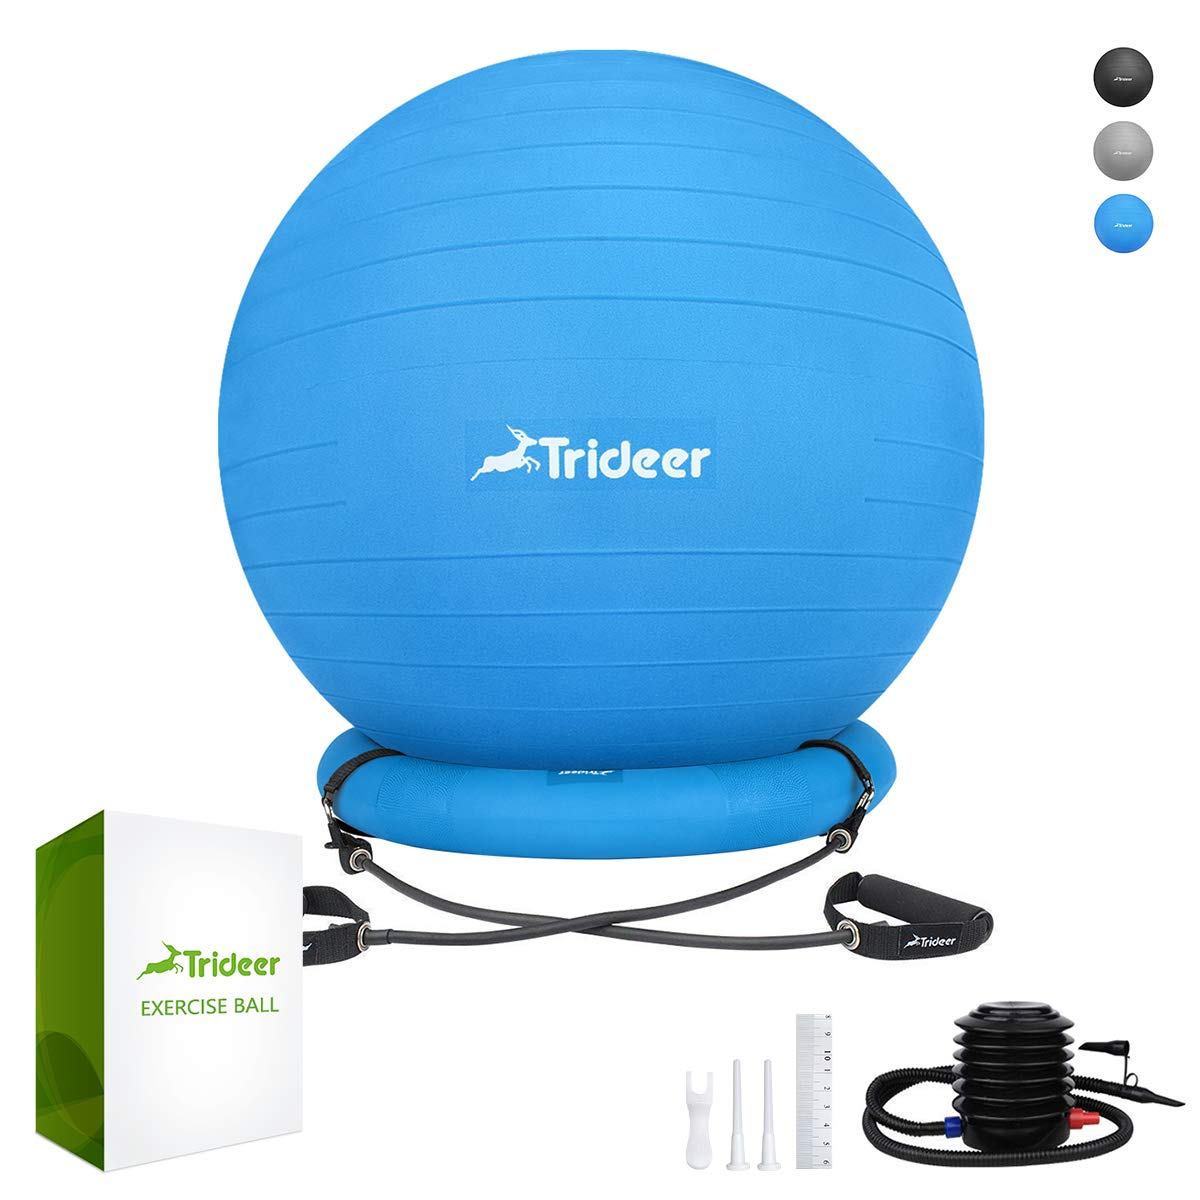 Trideer Ball Chair, Exercise Stability Yoga Ball with Base & Resistance Bands for Home and Office Desk, Flexible Ball Seat with Pump, Improves Balance, Core Strength & Posture (Dark Blue, 65cm)